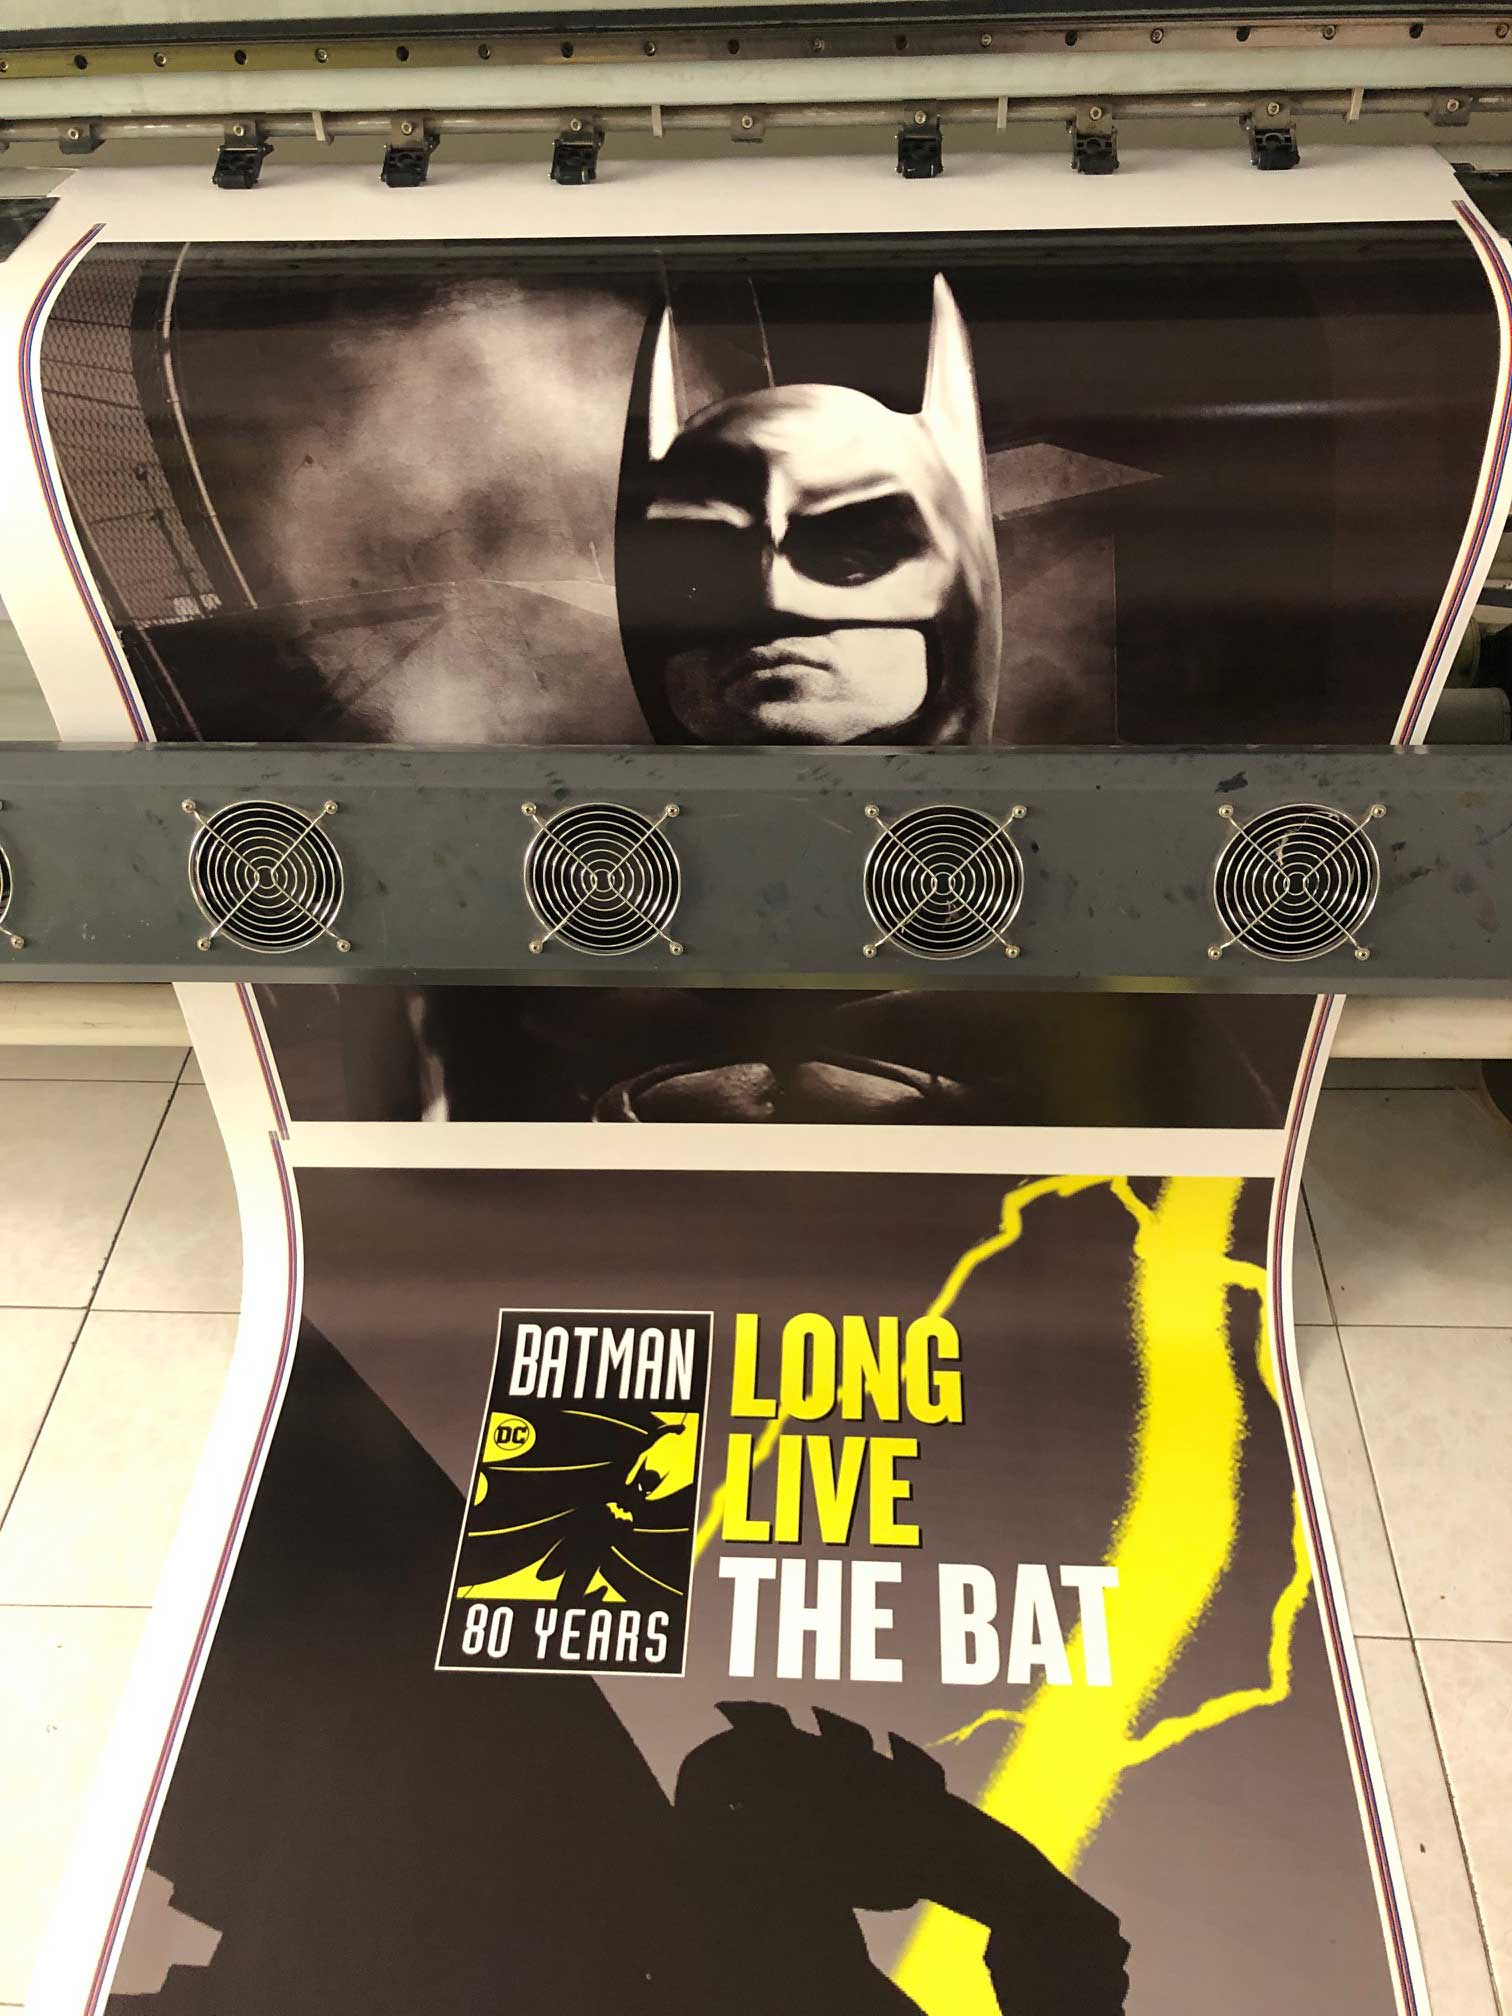 Viniles-Mate-Batman-Unboxing-Toy-Convent